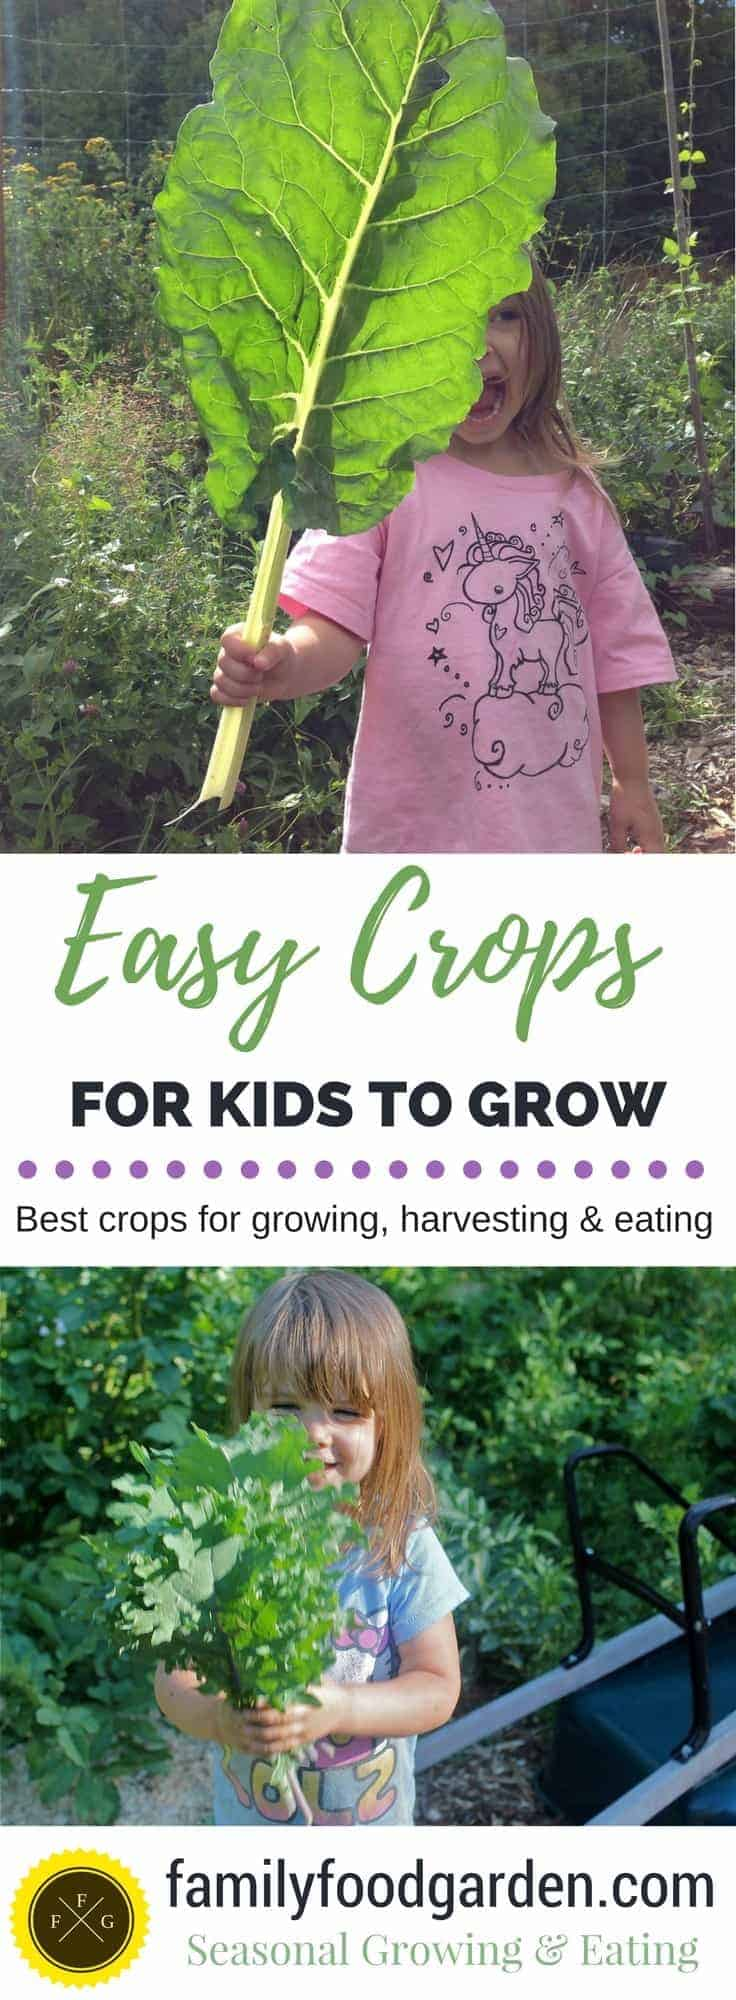 Easy seeds for little hands to grow, harvest & eat from the garden